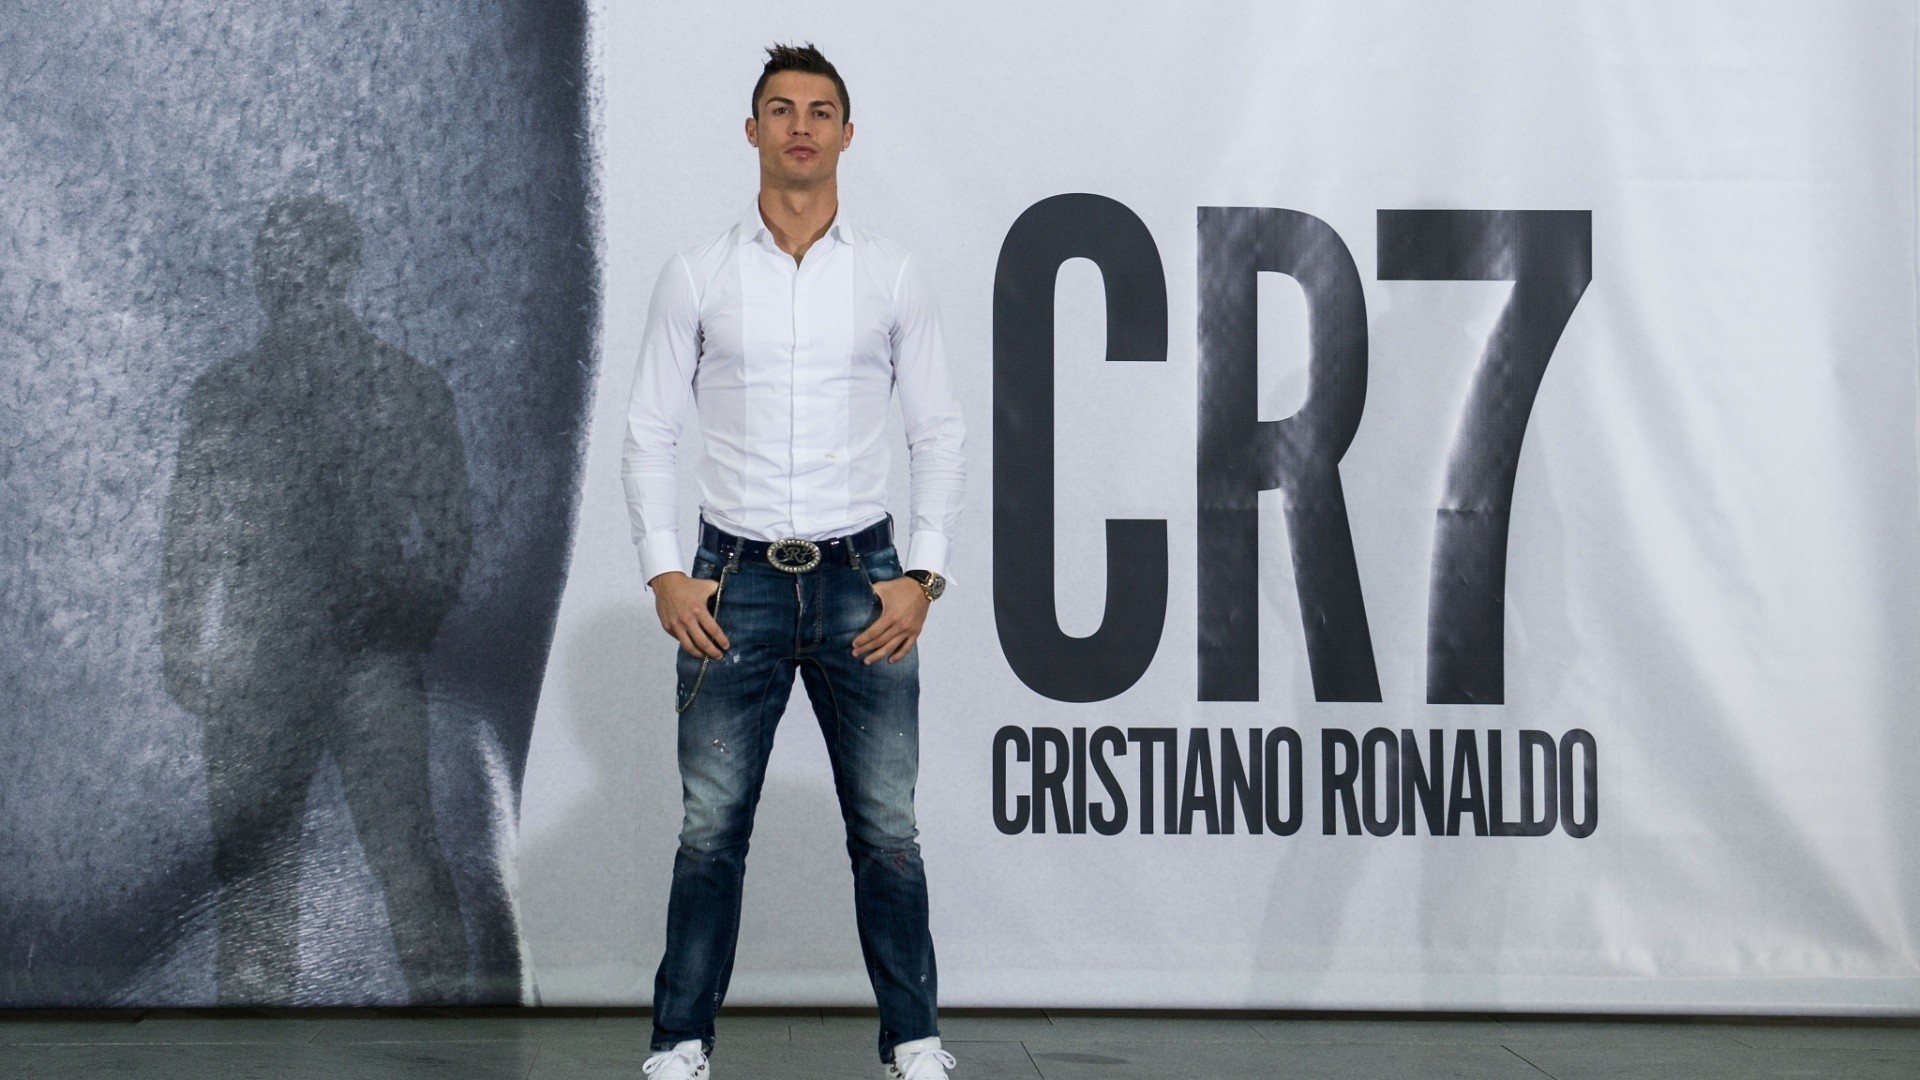 Cristiano Ronaldo HD Images-Get the Newest Collection of Cristiano Ronaldo  HD Images for your DesktopPCs,Cell Phones and Tablets Only at Wallpapers…